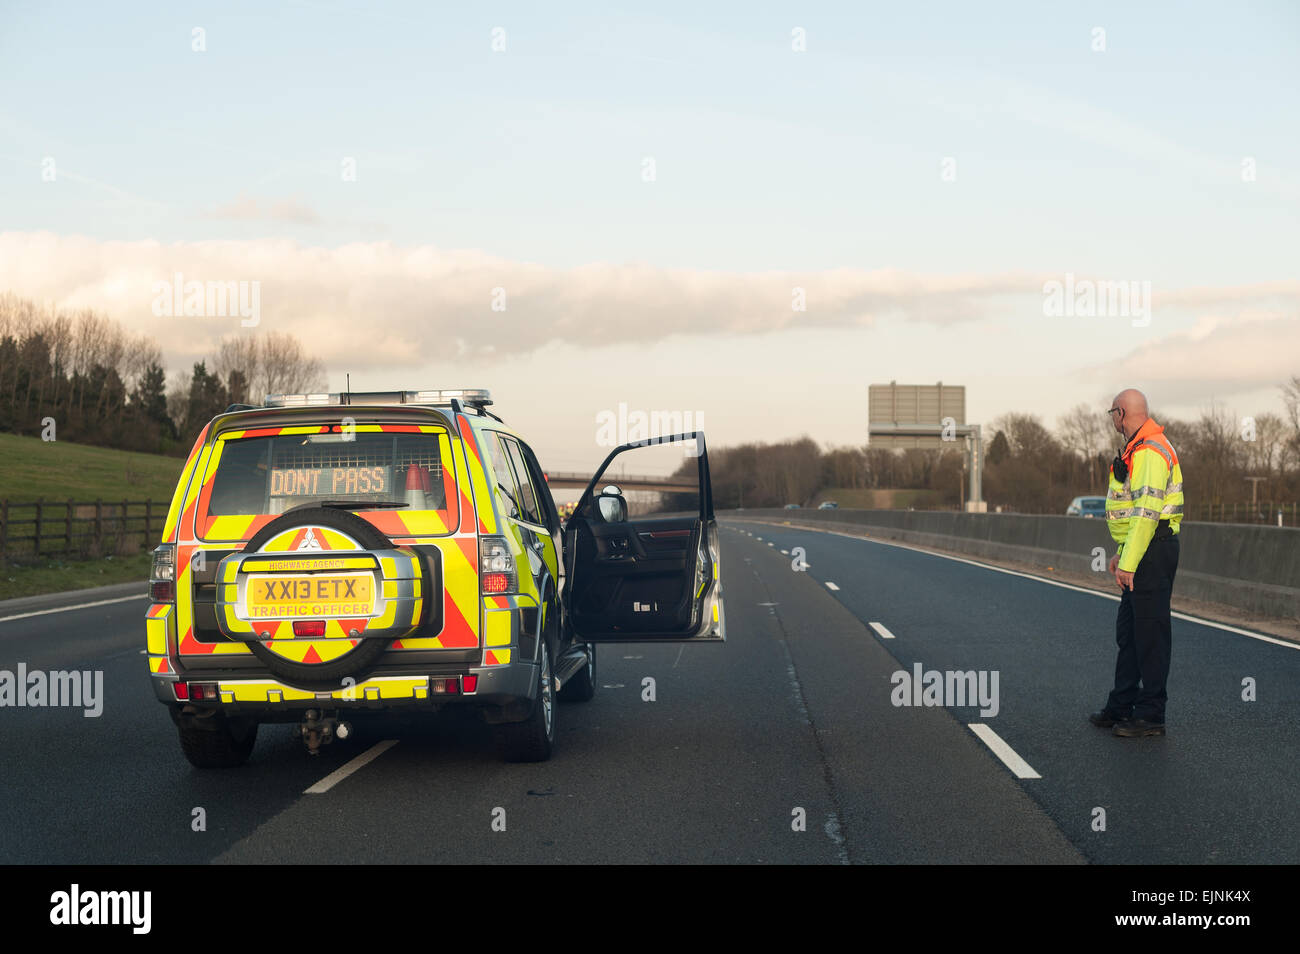 Motorway closure on M25 27 march as no hard shoulder now a 4 lane road so any accident can shut down the highway - Stock Image